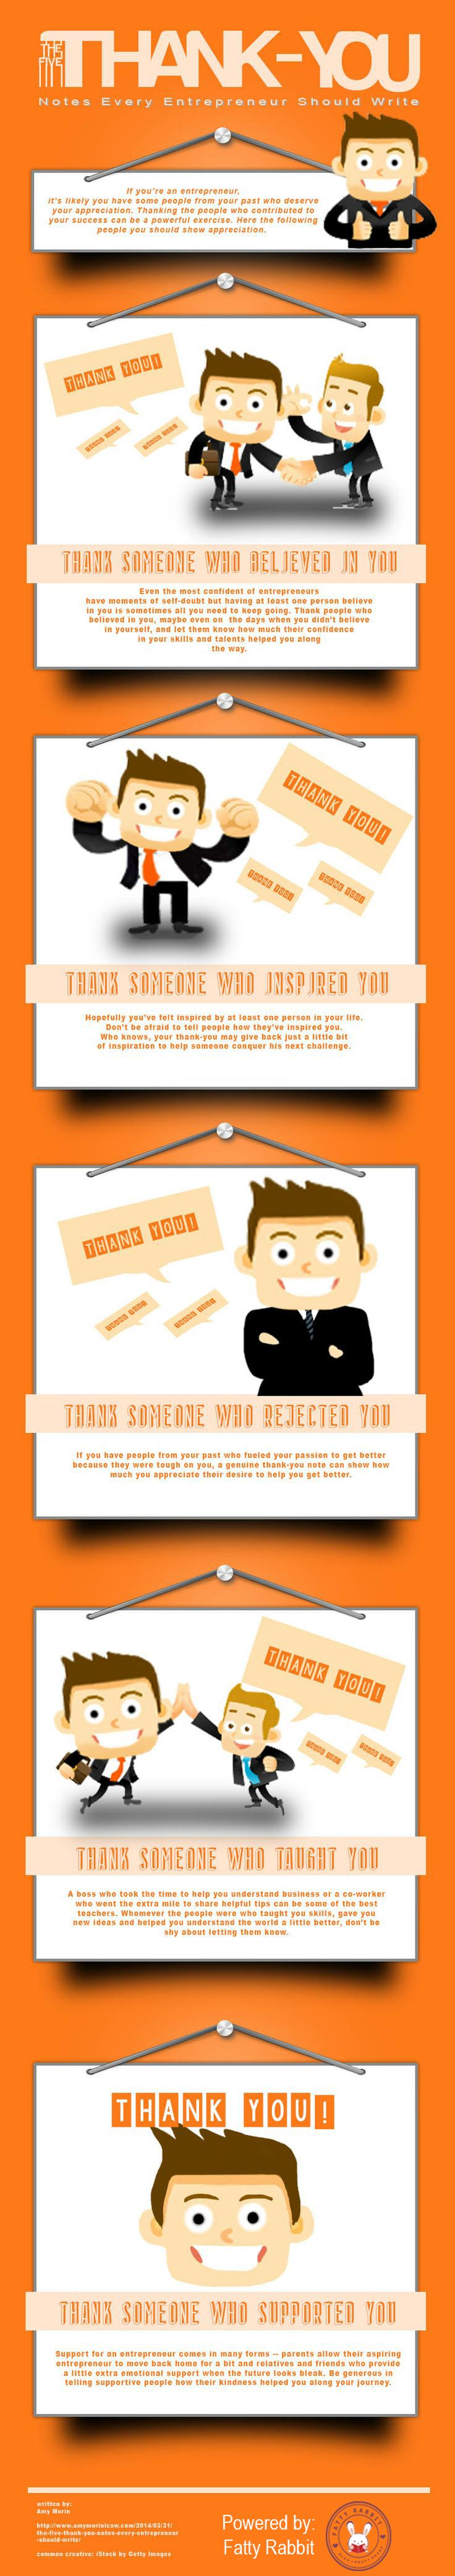 The Five Thank You notes every entrepreneur should write  #medium #business #strategy